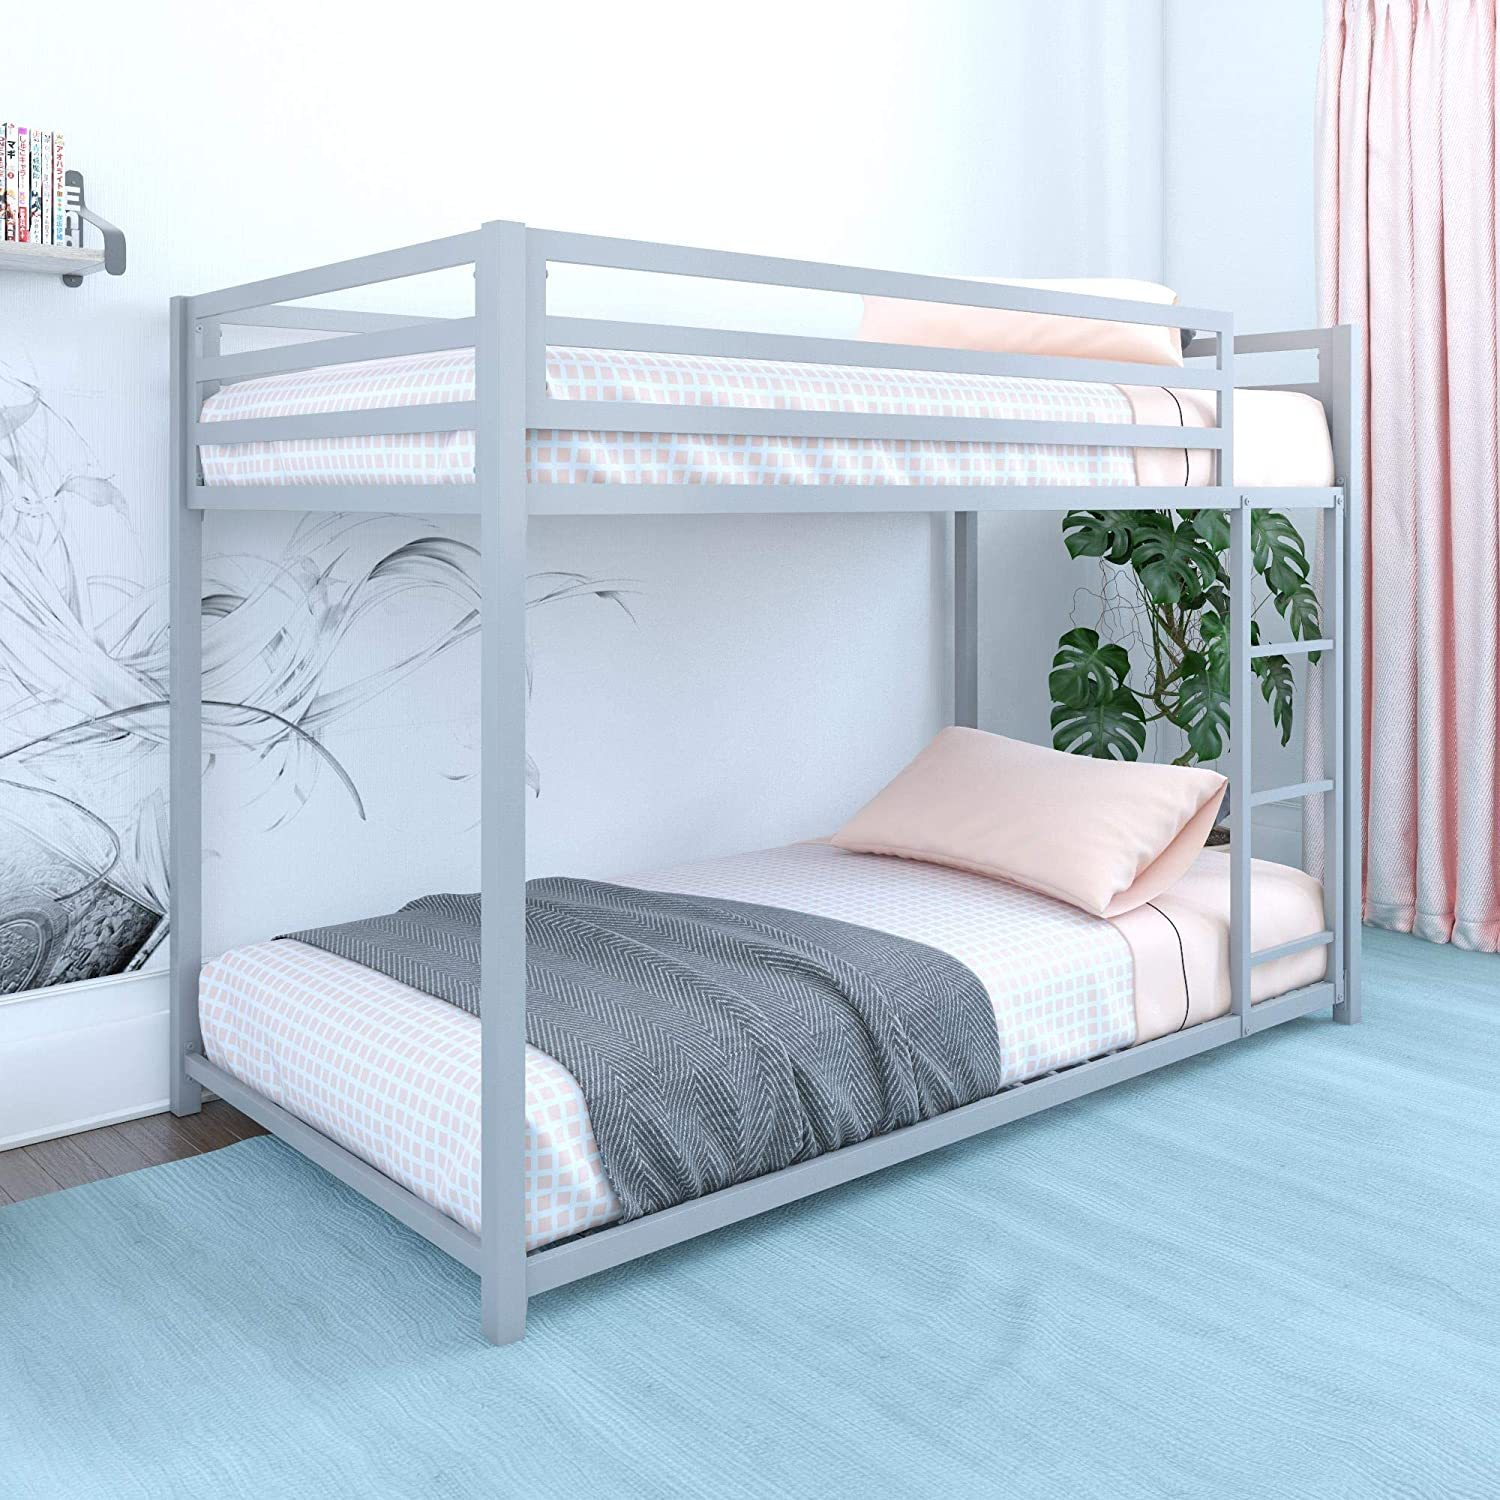 Bunk Beds Under $100 $150 $200 & $300 - DHP Miles Metal Bunk Bed - Twin over twin